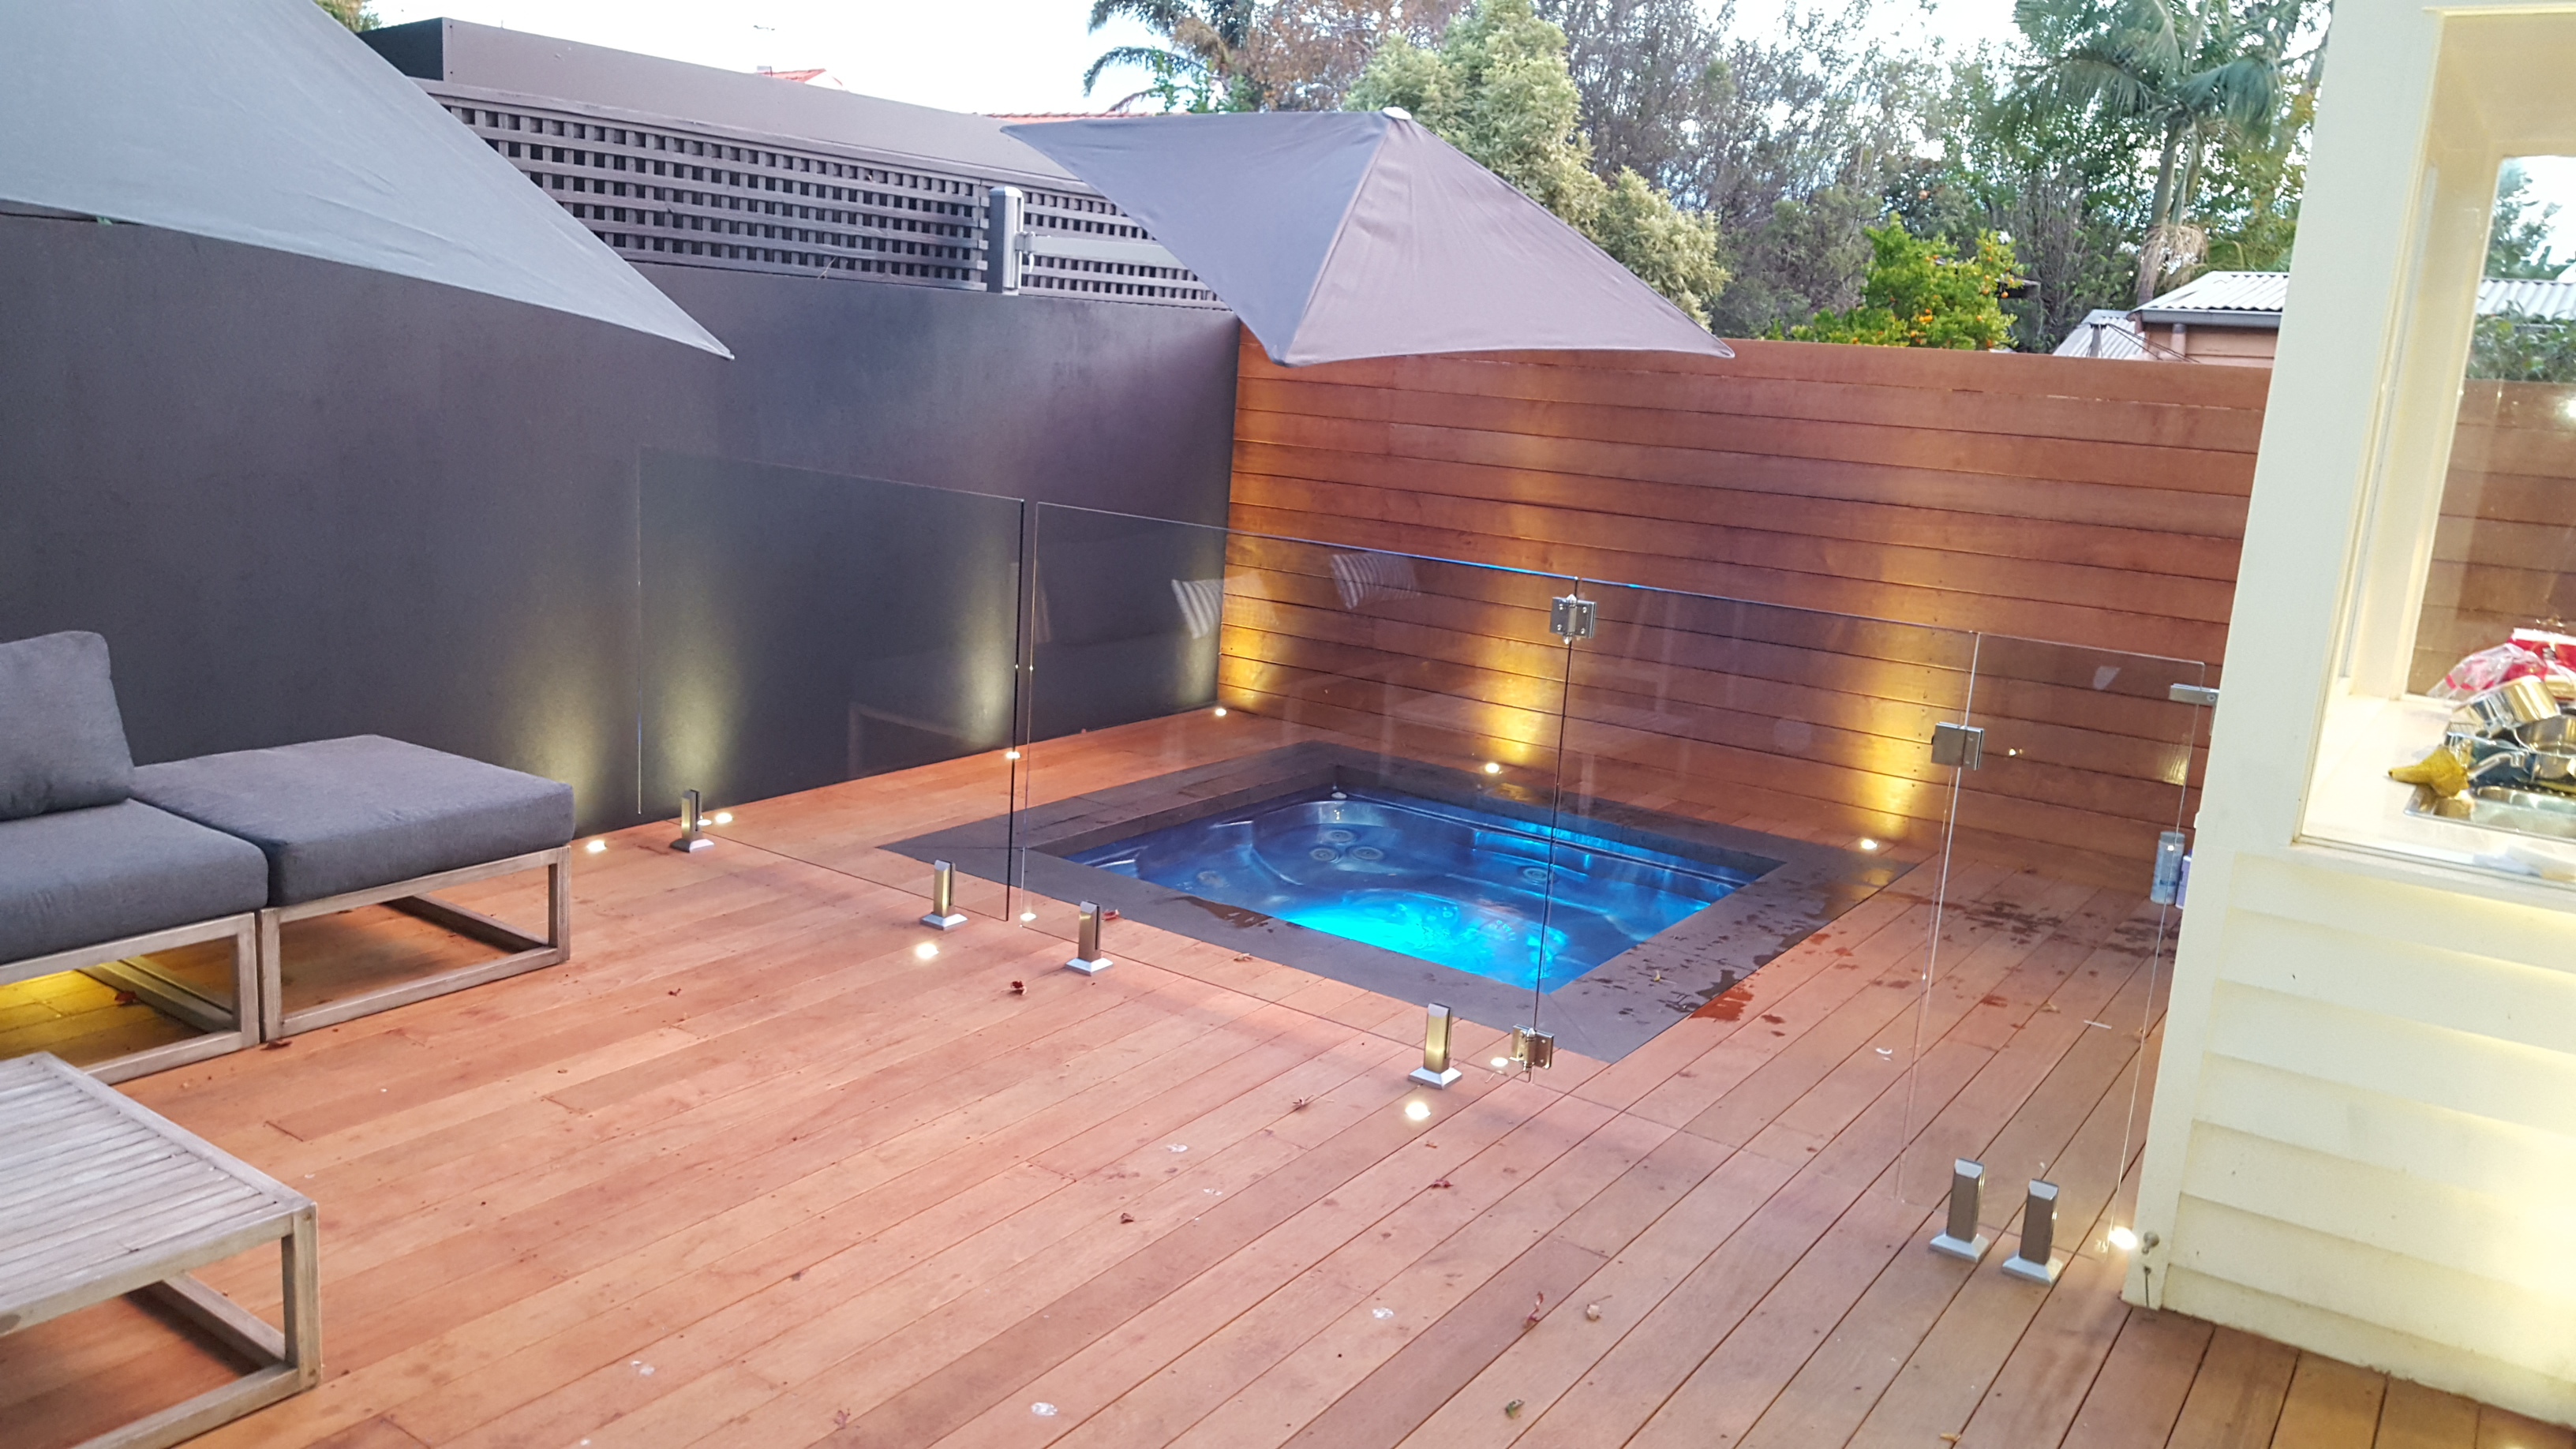 Faqs Regulations For Wiring Up A Hot Tub Details Can Be Found On The Victorian Building Authority Website